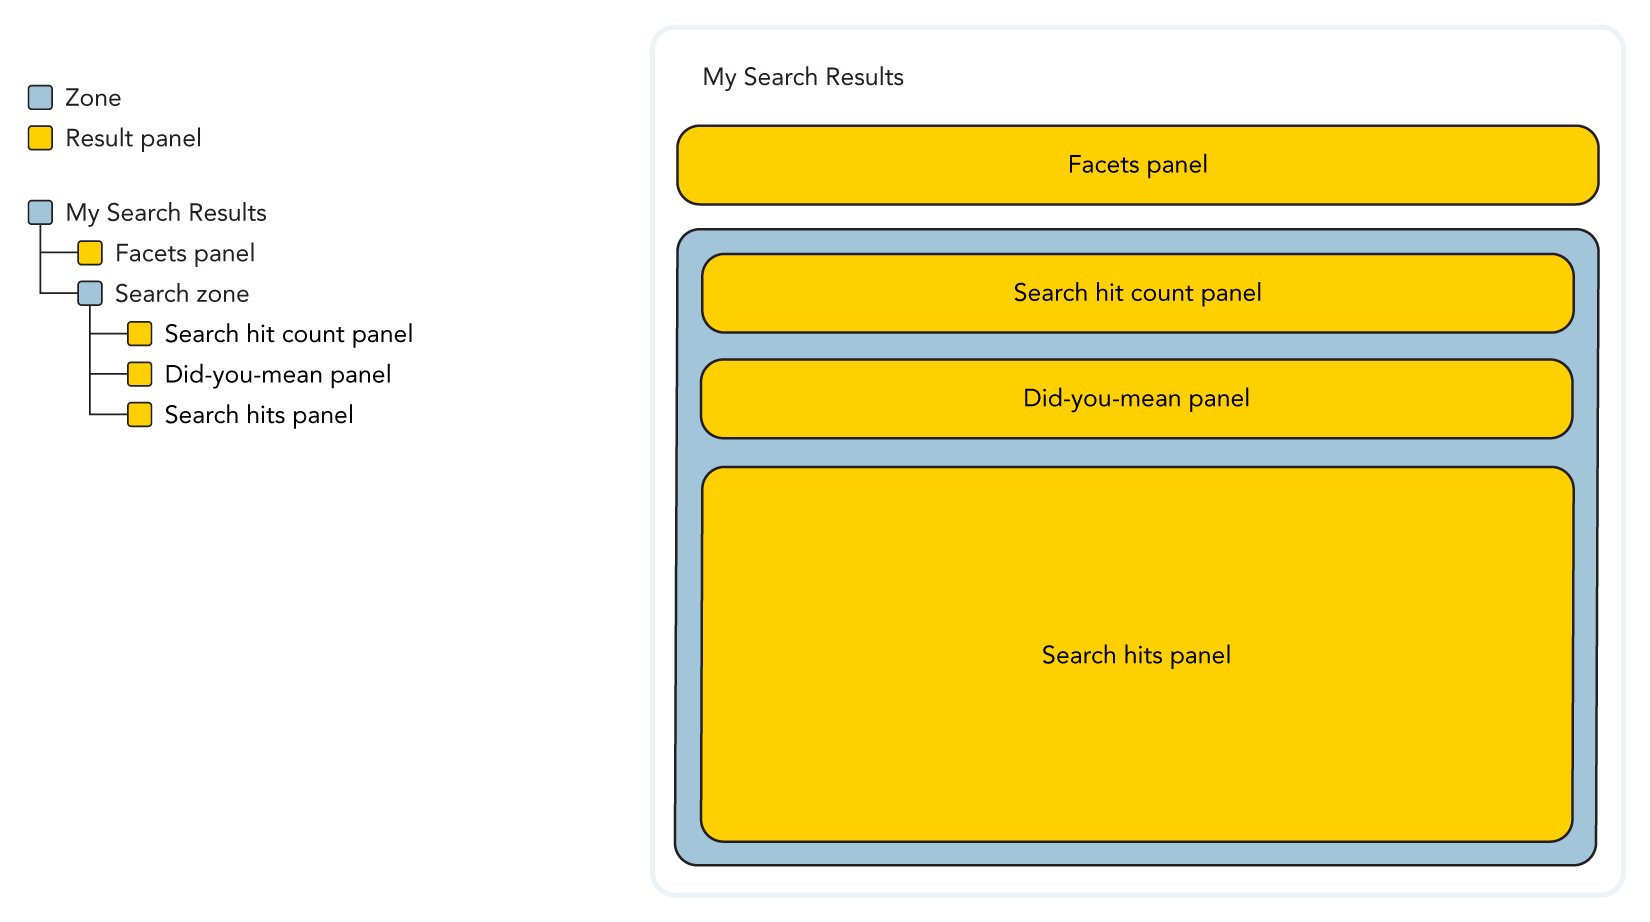 Illustration of a search result page panel hierarchy